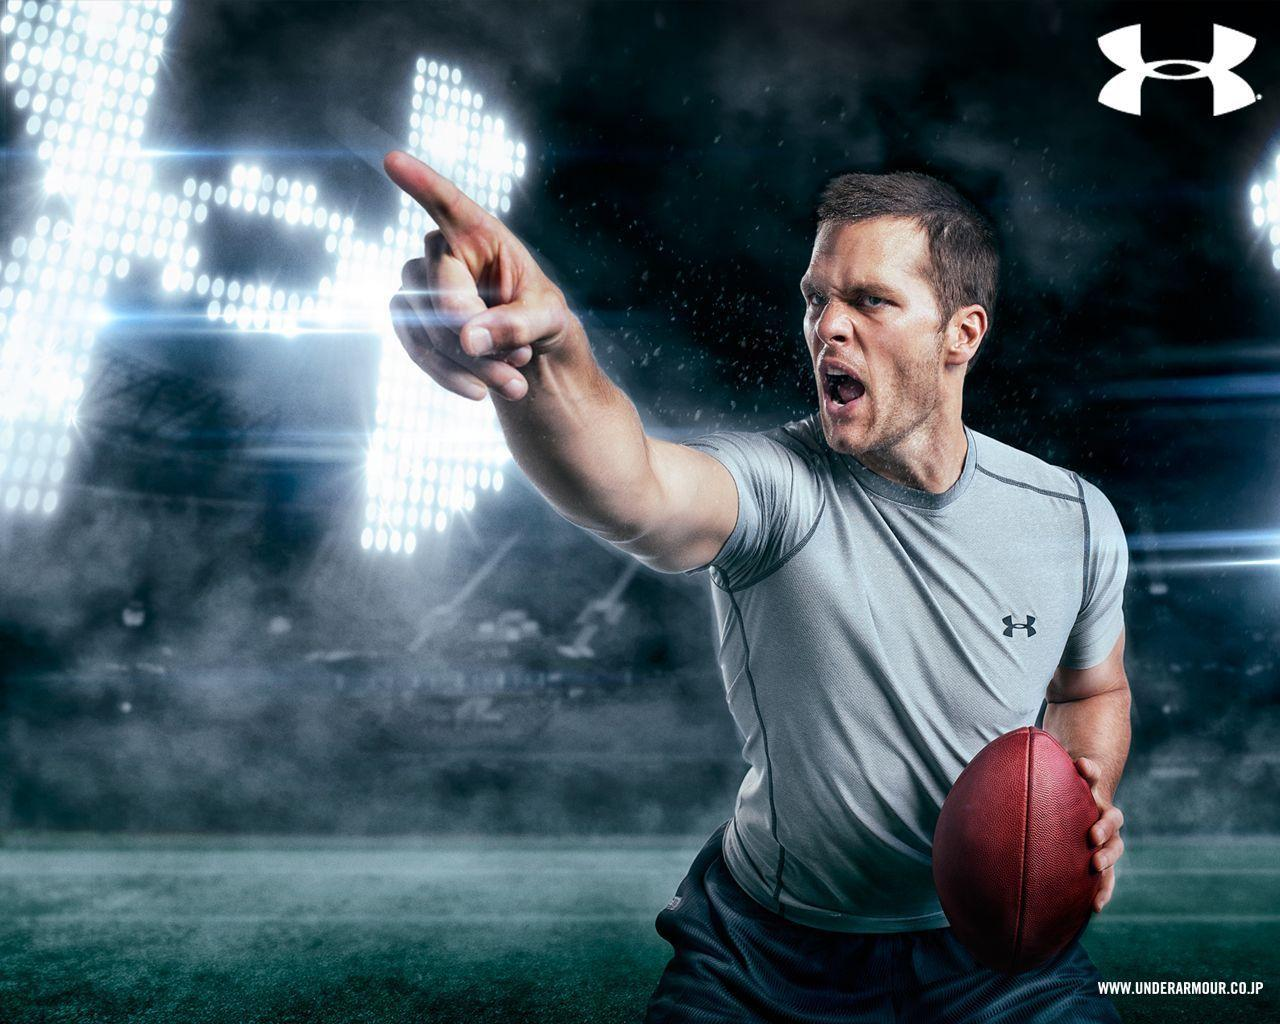 under armour wallpapers – 1280×1024 High Definition Wallpapers